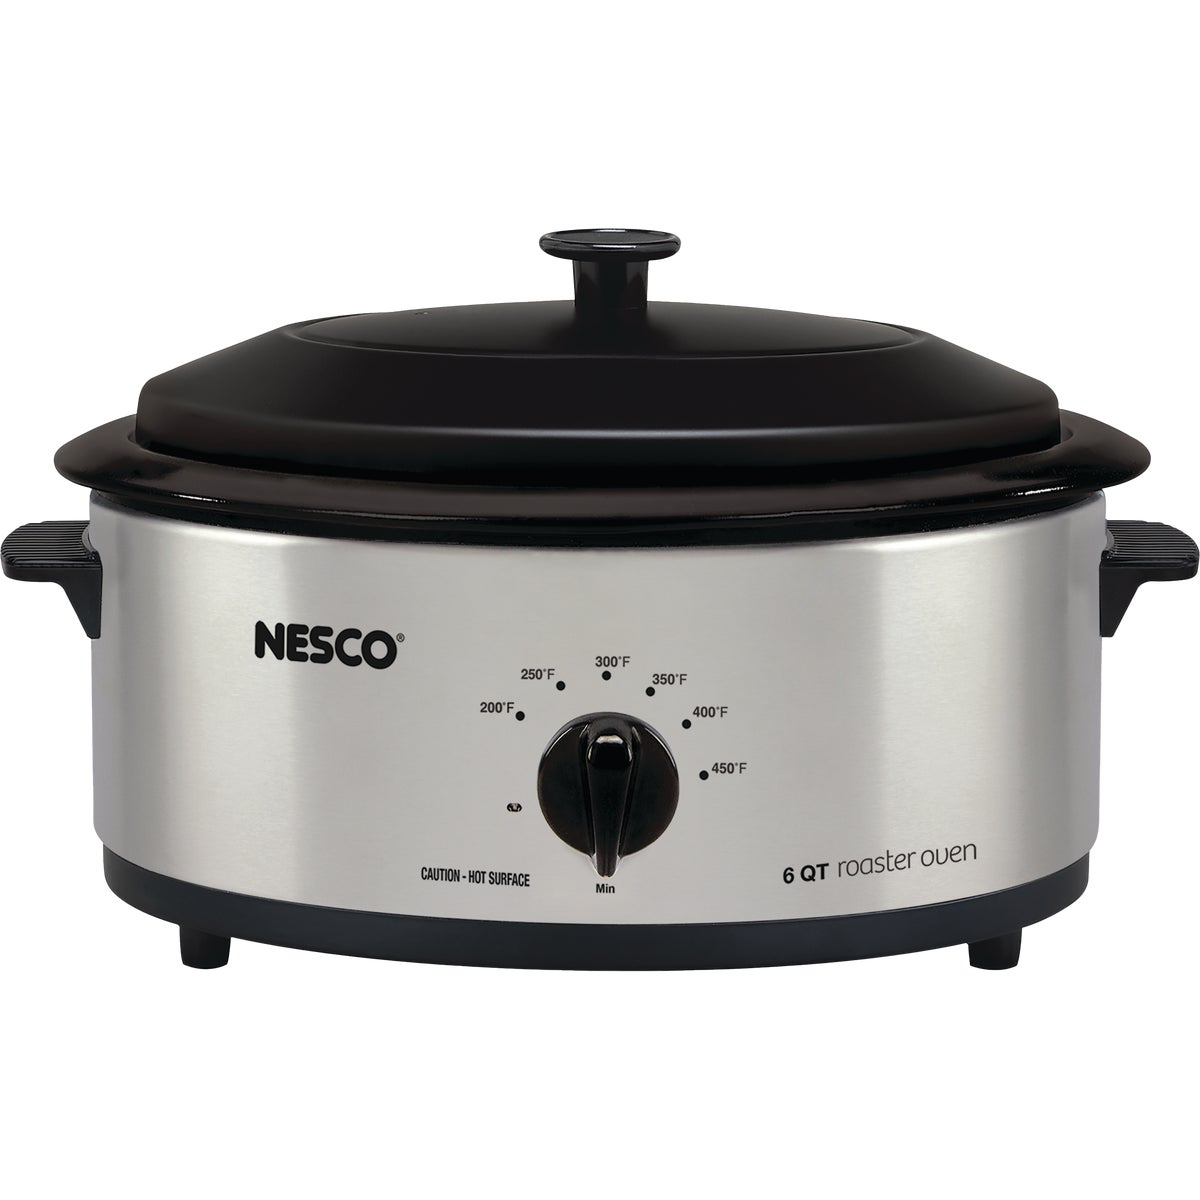 6QT IVY ELECTRIC ROASTER